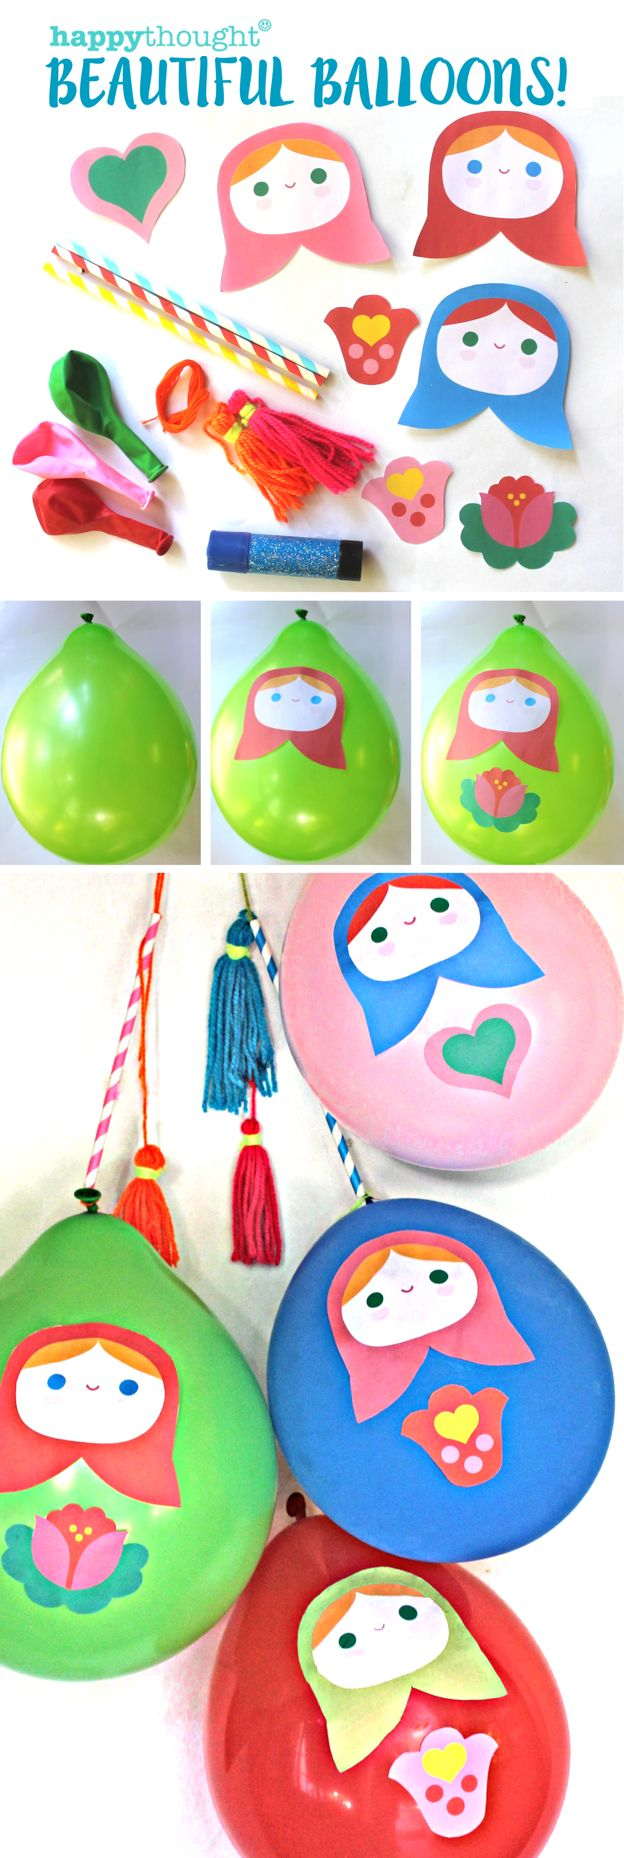 Printable balloon decorations for fun party time! Yippee! Instant download at happythought.co.uk